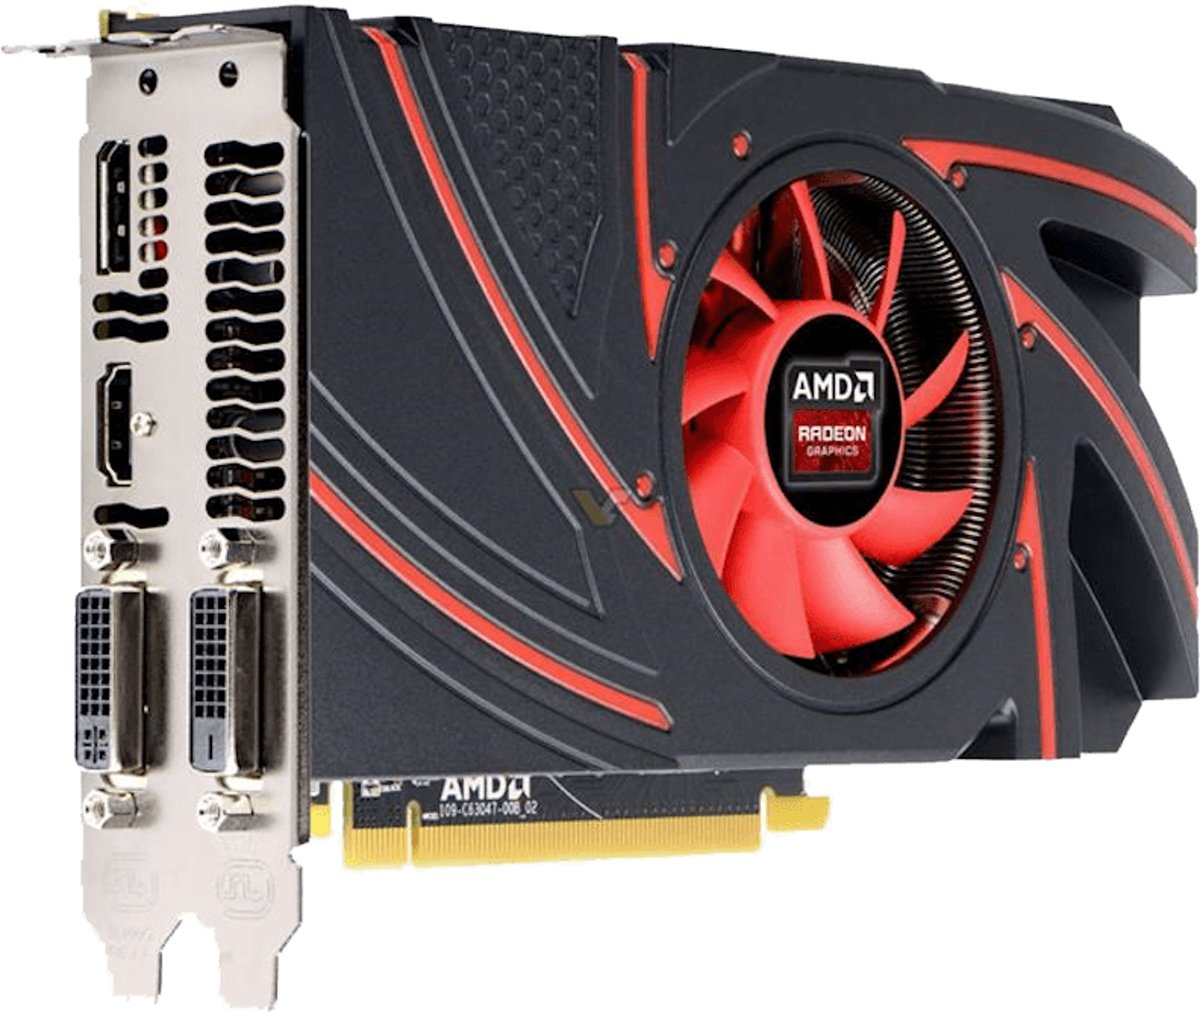 AMD Radeon R9 270 PCI-Express 3.0 x16 Full-Height (2GB GDDR5, 256-bit, DP+HDMI+2x DVI, DirectX 12)